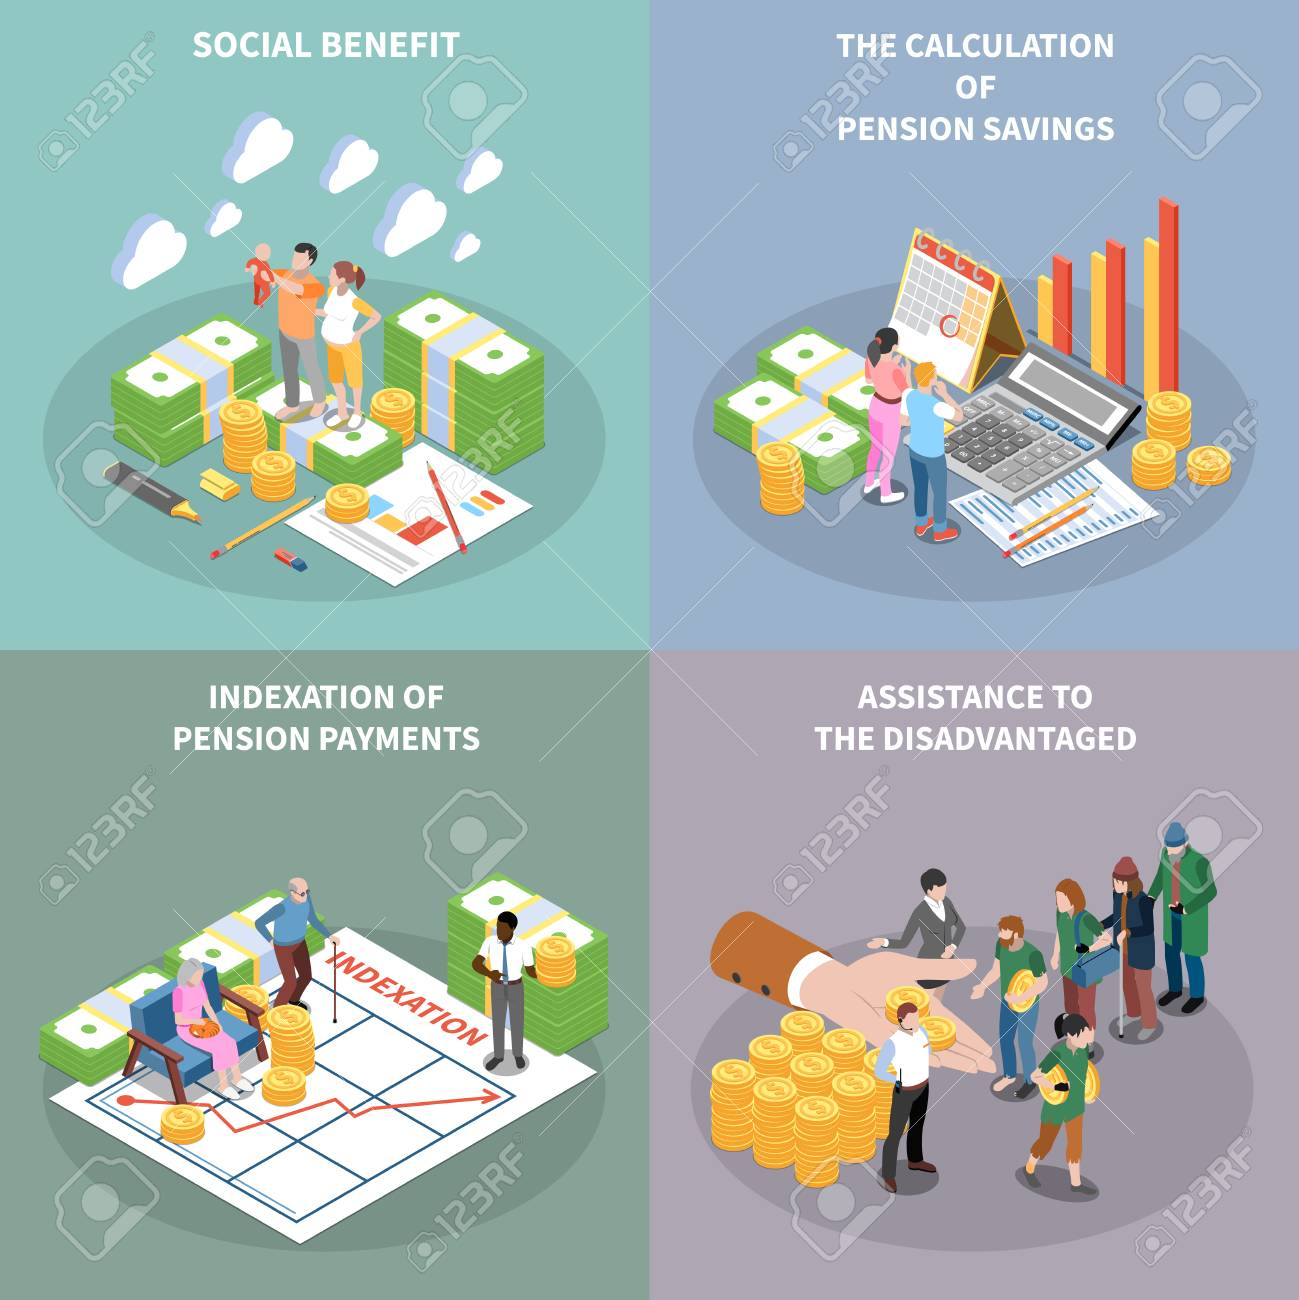 Social security unemployment benefits unconditional income isometric 2x2 design concept with banknote bundles people and text vector illustration - 126478160